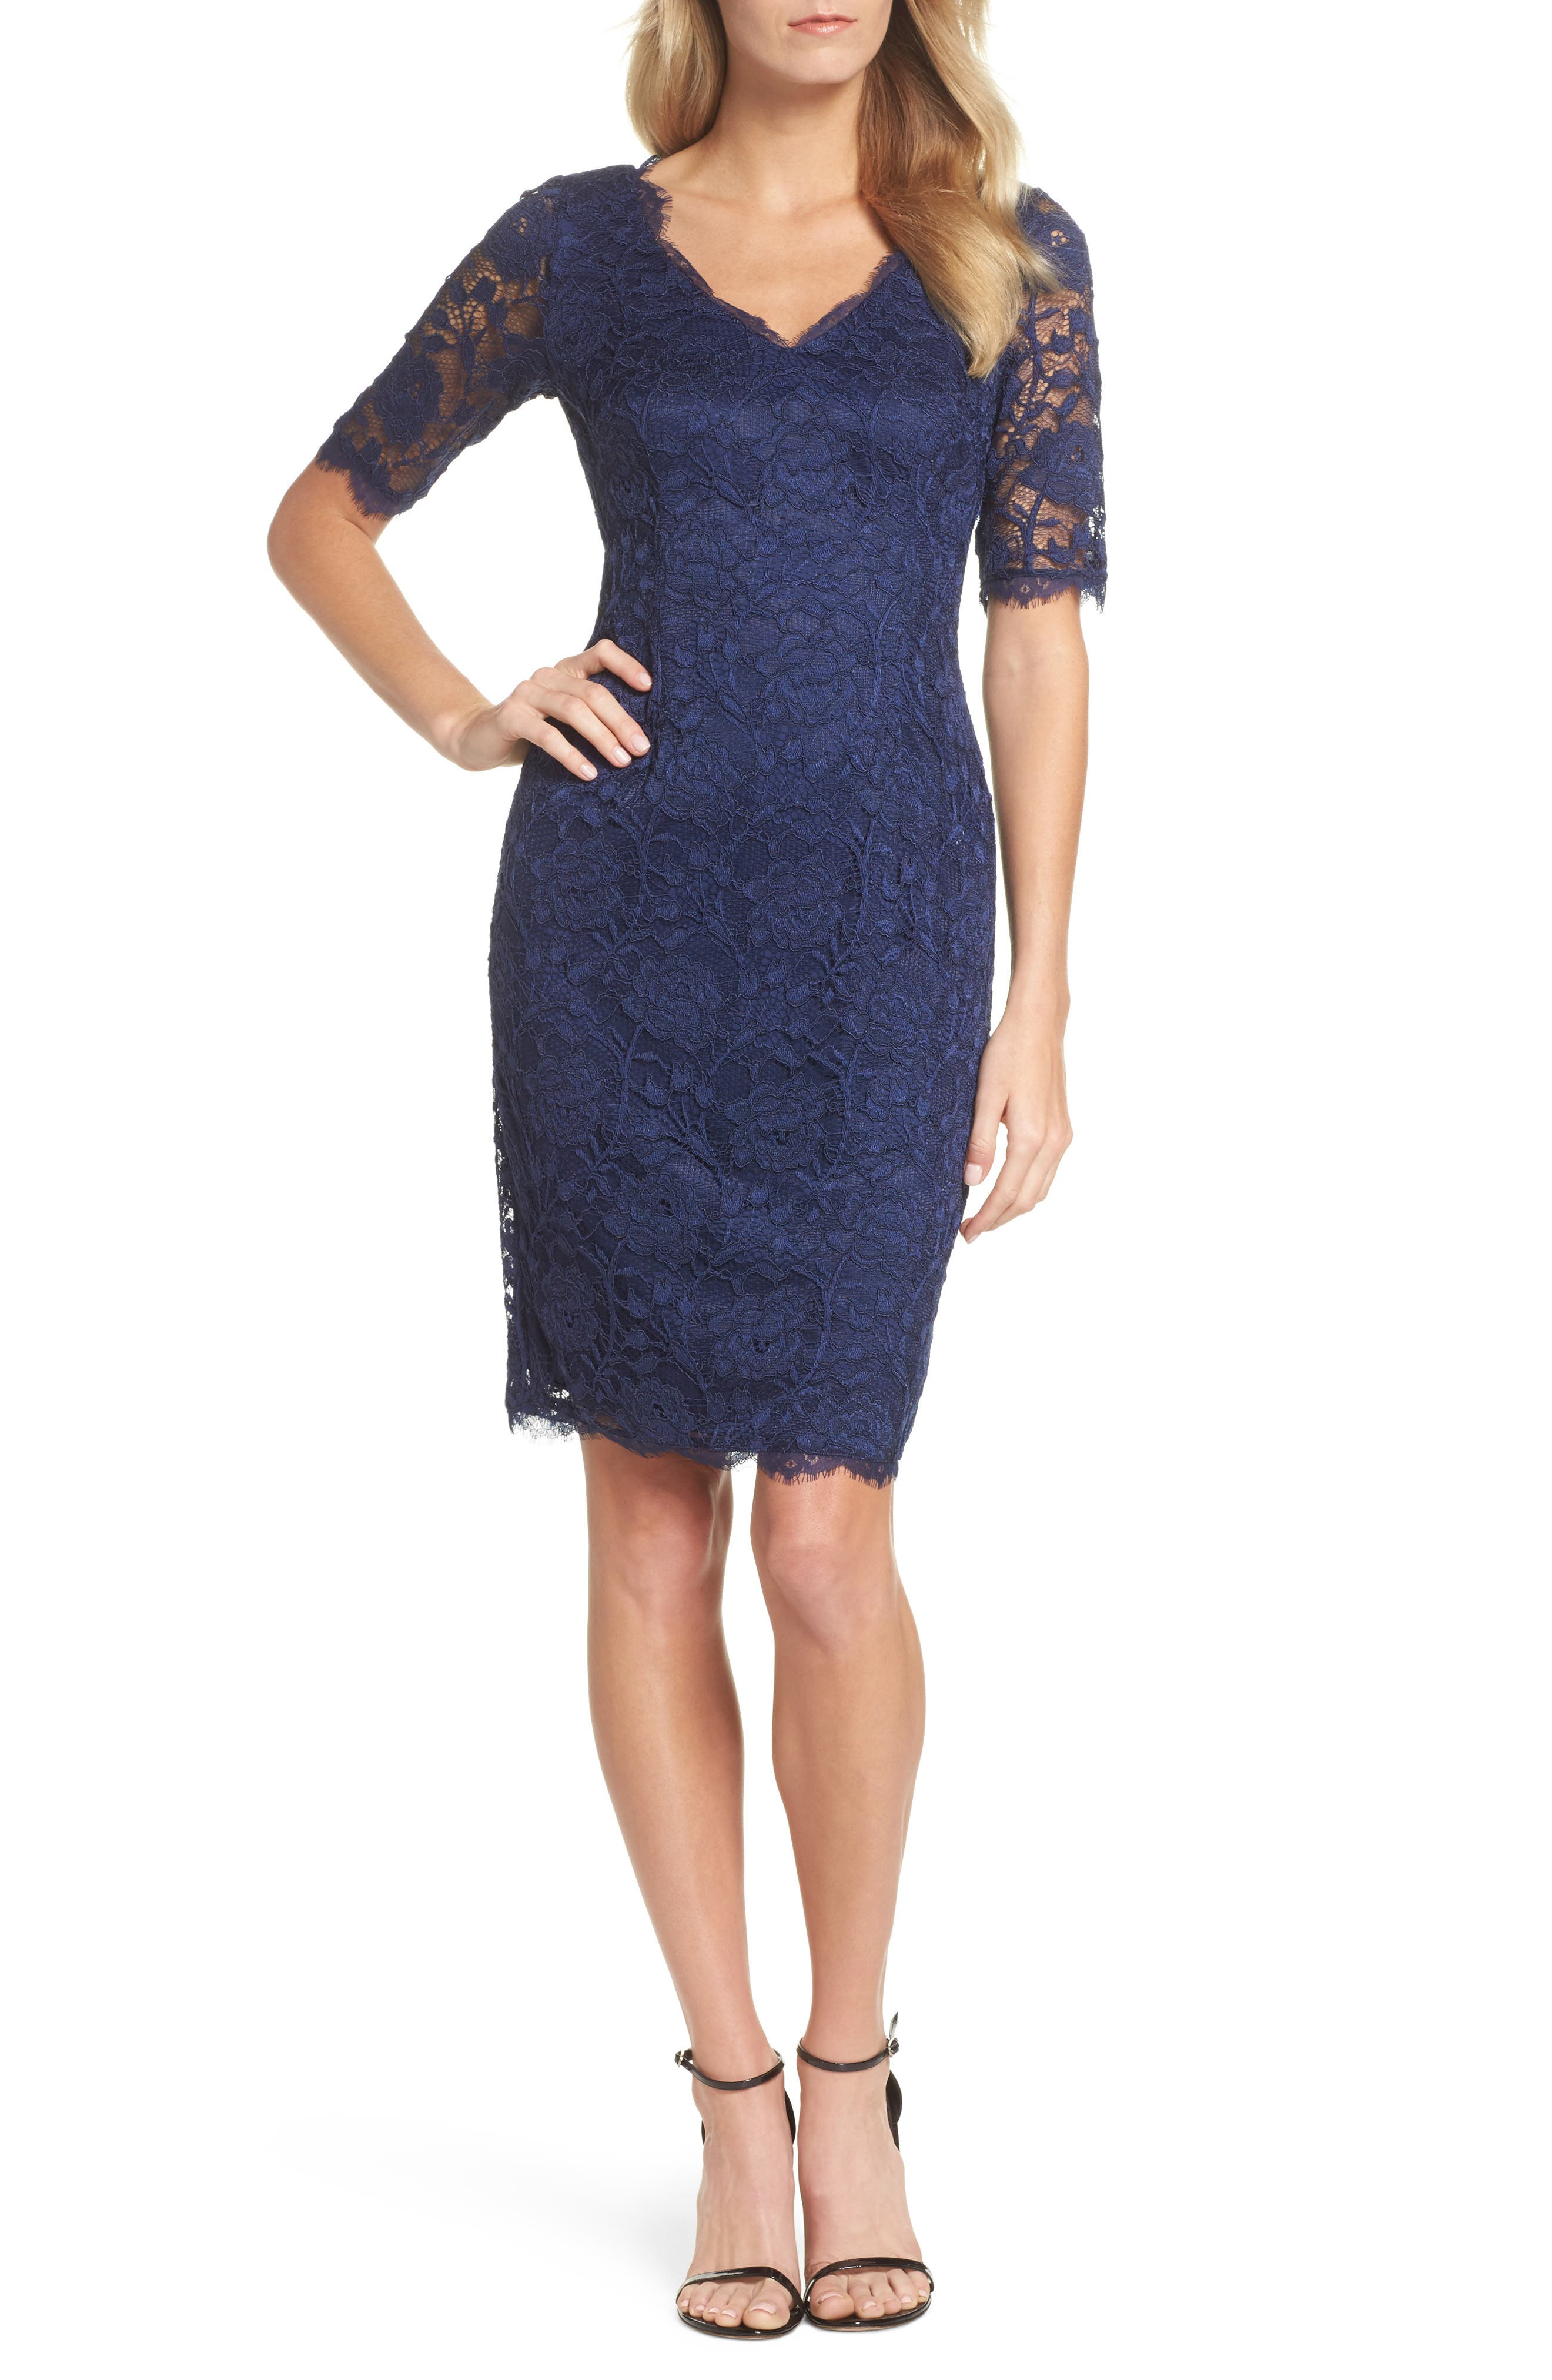 Alternate Image 1 Selected - Adrianna Papell Rose Lace Sheath Dress